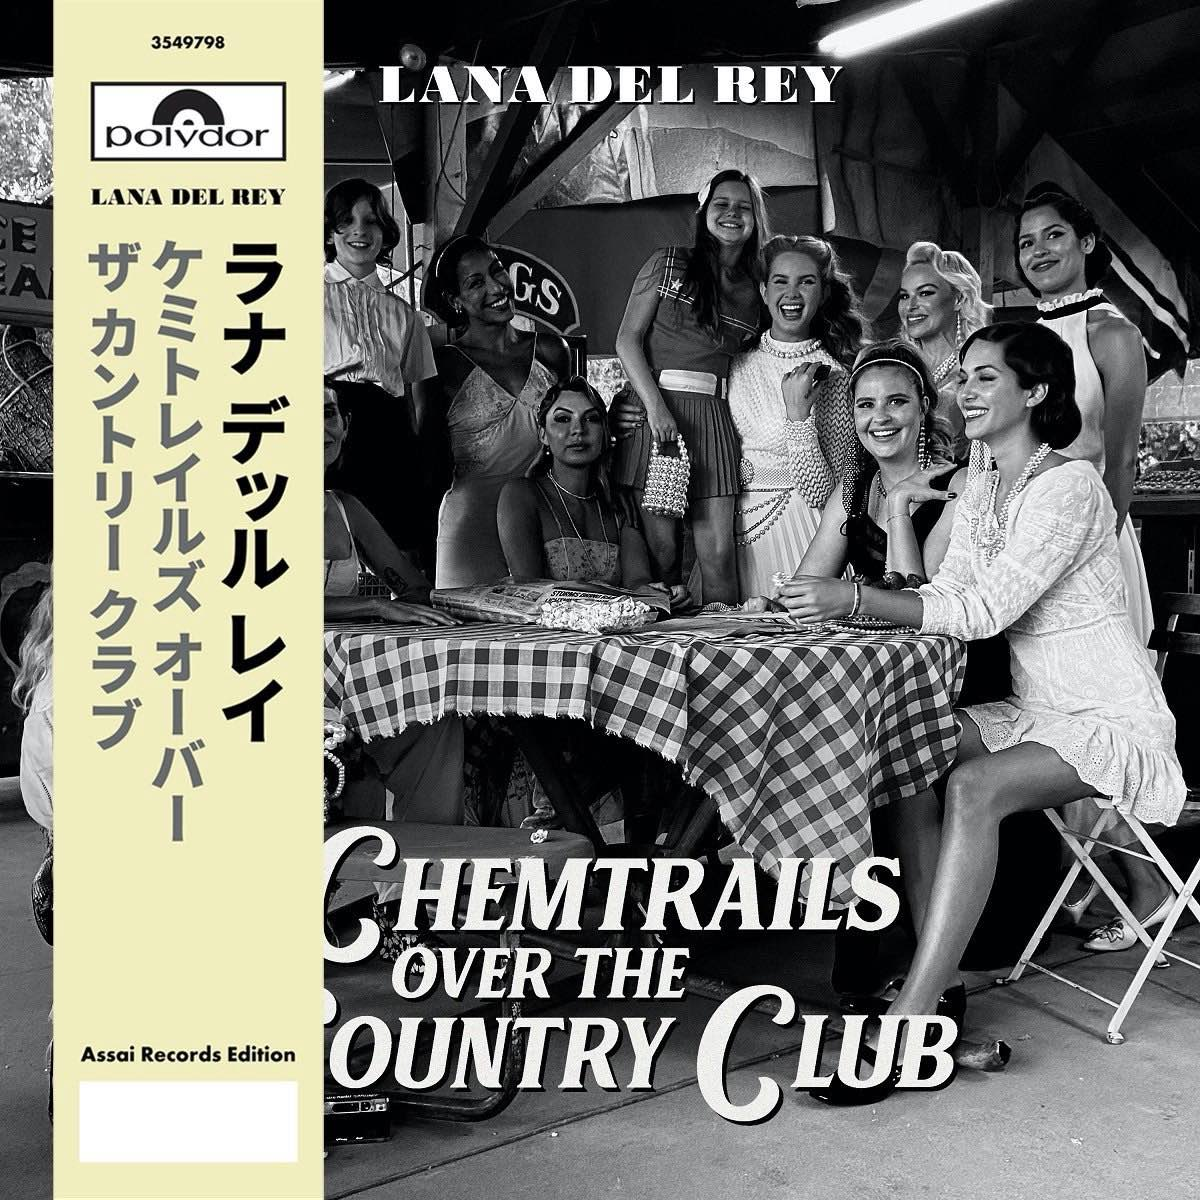 Lana Del Rey - Chemtrails Over the Country Club [Limited Indies Only Yellow LP - Assai Numerado - Japanese OBI]